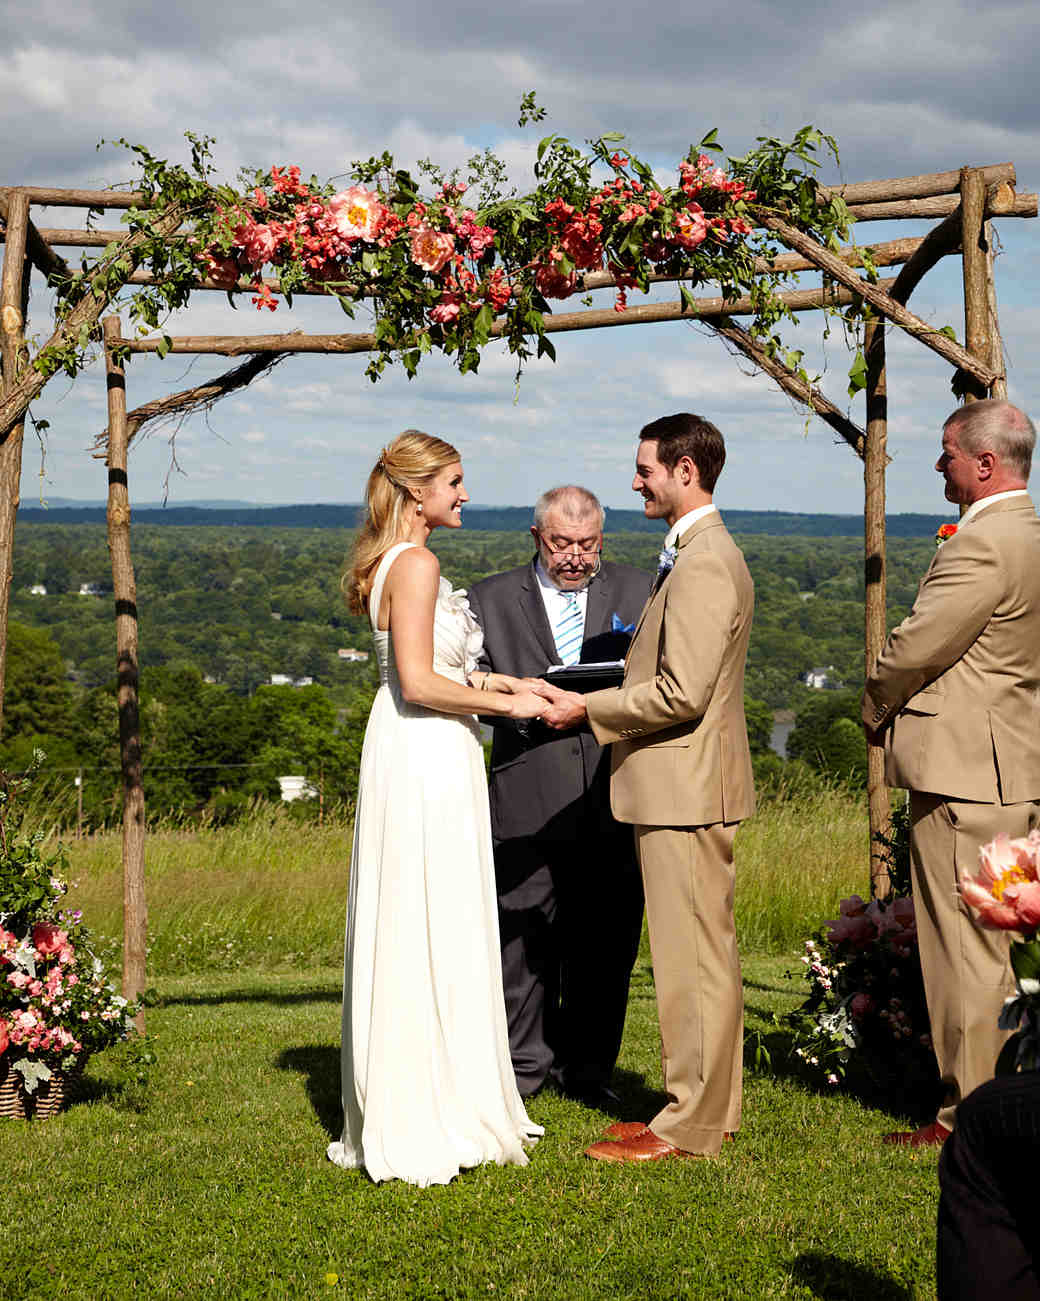 Wooden Wedding Arch with Pink and Red Flowers